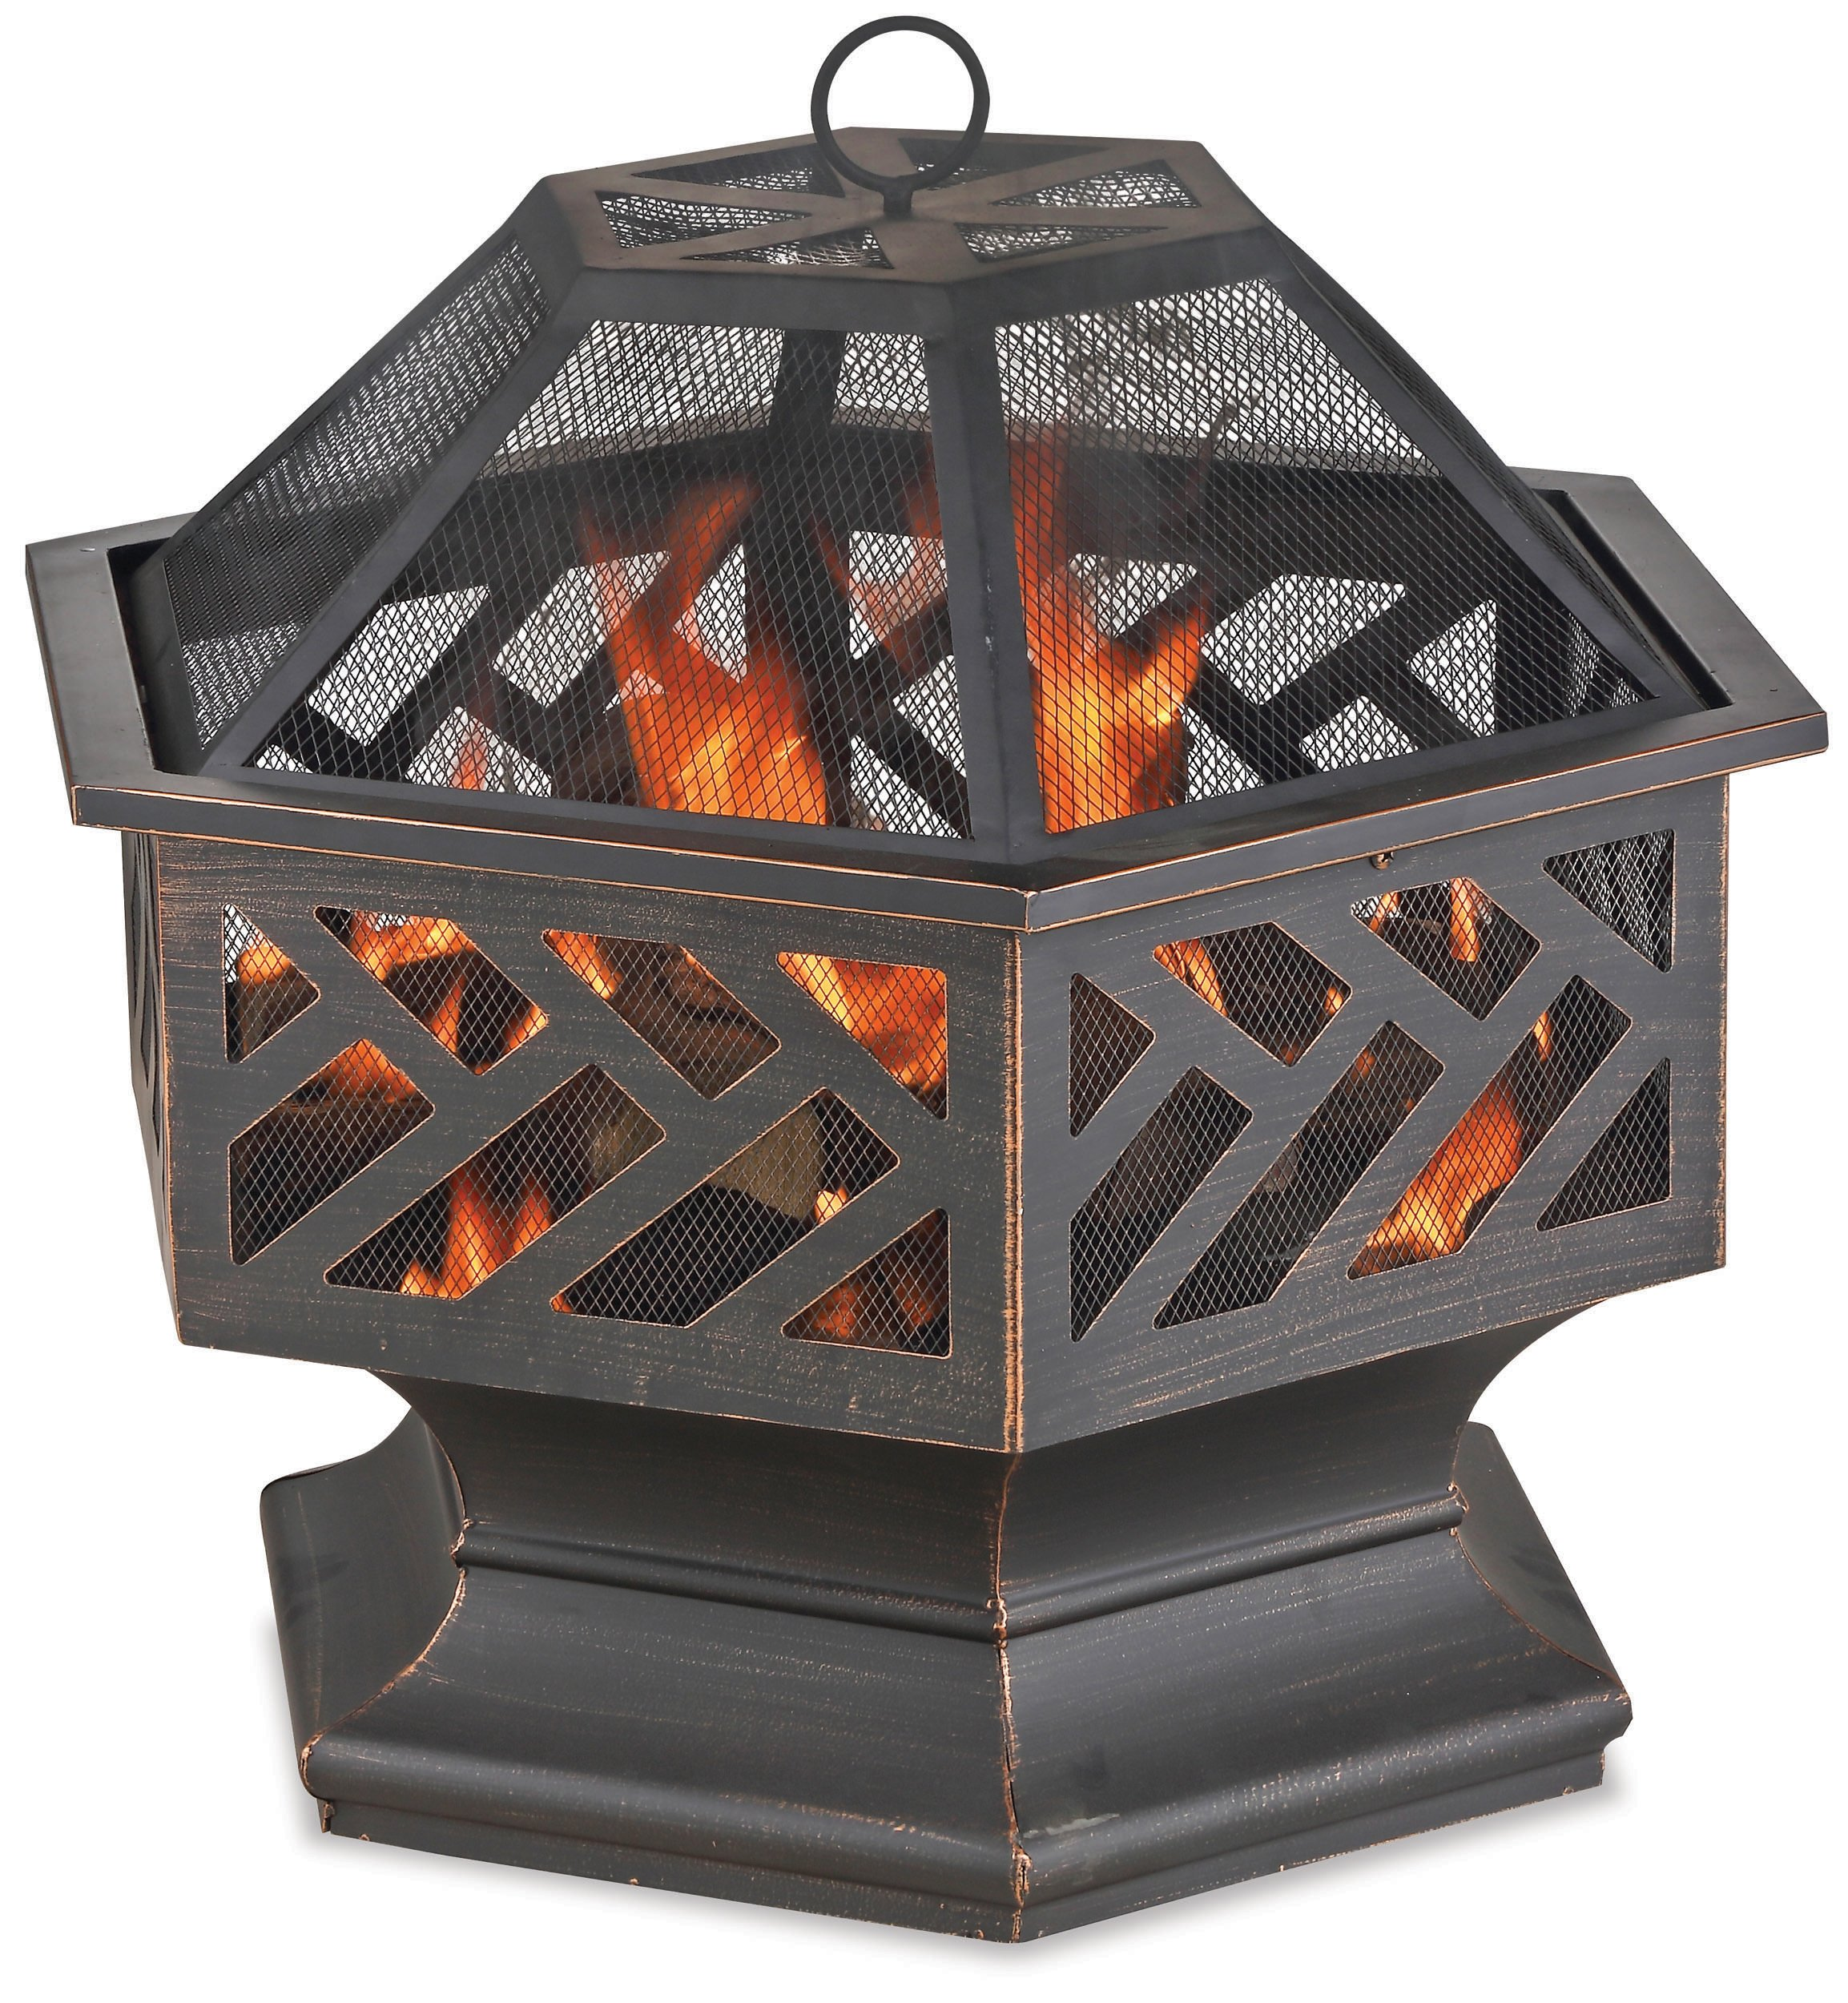 Endless Summer WAD1576SP Oil Rubbed Bronzed Wood Burning Fire Bowl with Geometric Design Outdoor Firepit, Black - 24 in. Dia bowl Wood burning for convenient heating Spark guard included for safety - patio, outdoor-decor, fire-pits-outdoor-fireplaces - 91kULZxcedL -